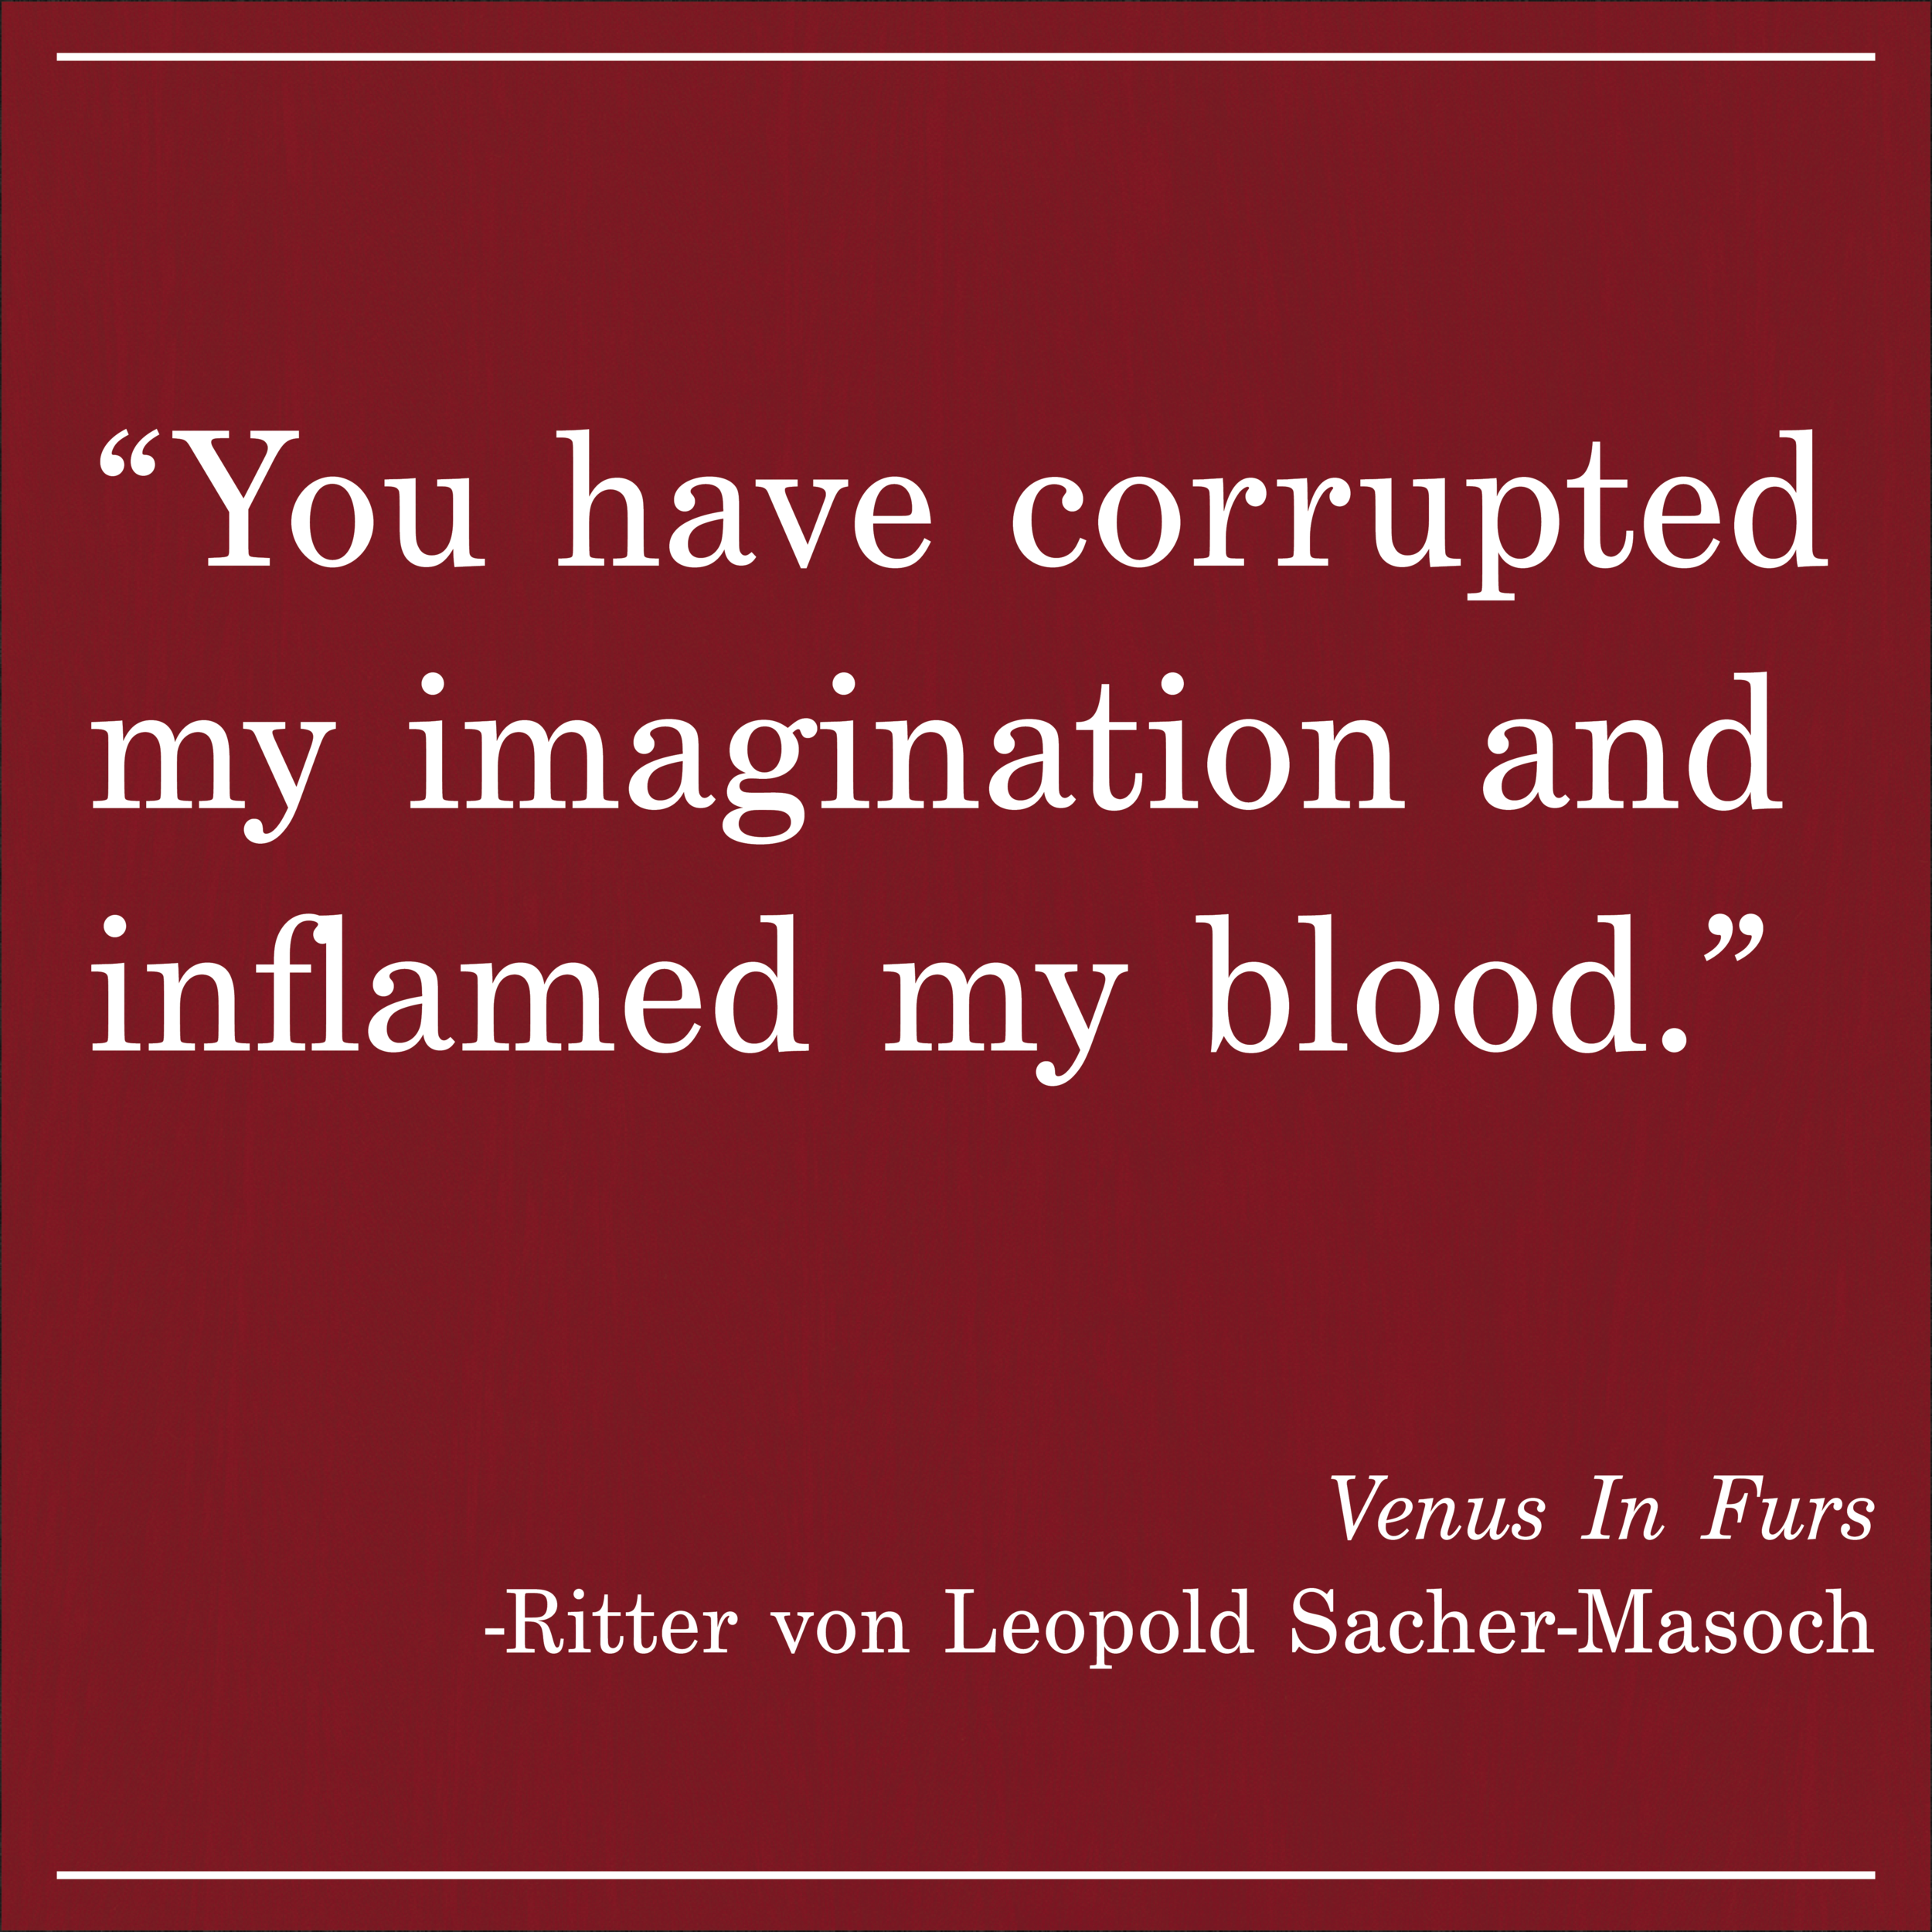 Daily Quote Venus in Furs by Ritter von Leopold Sacher-Masoch